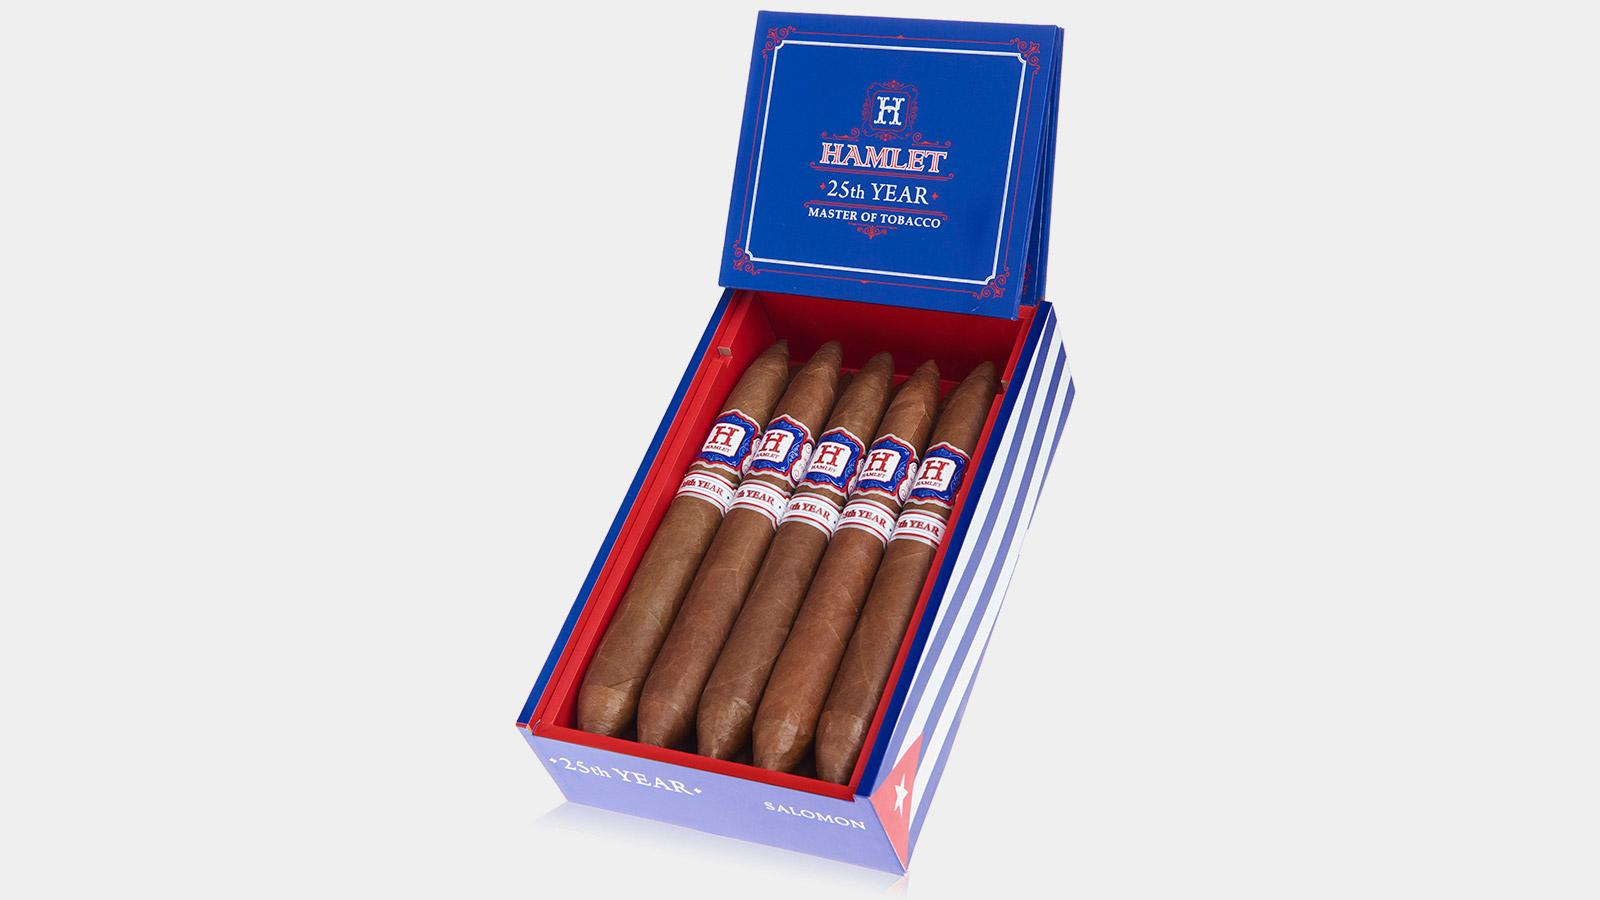 Rocky Patel Ships Hamlet 25th Year Salomon